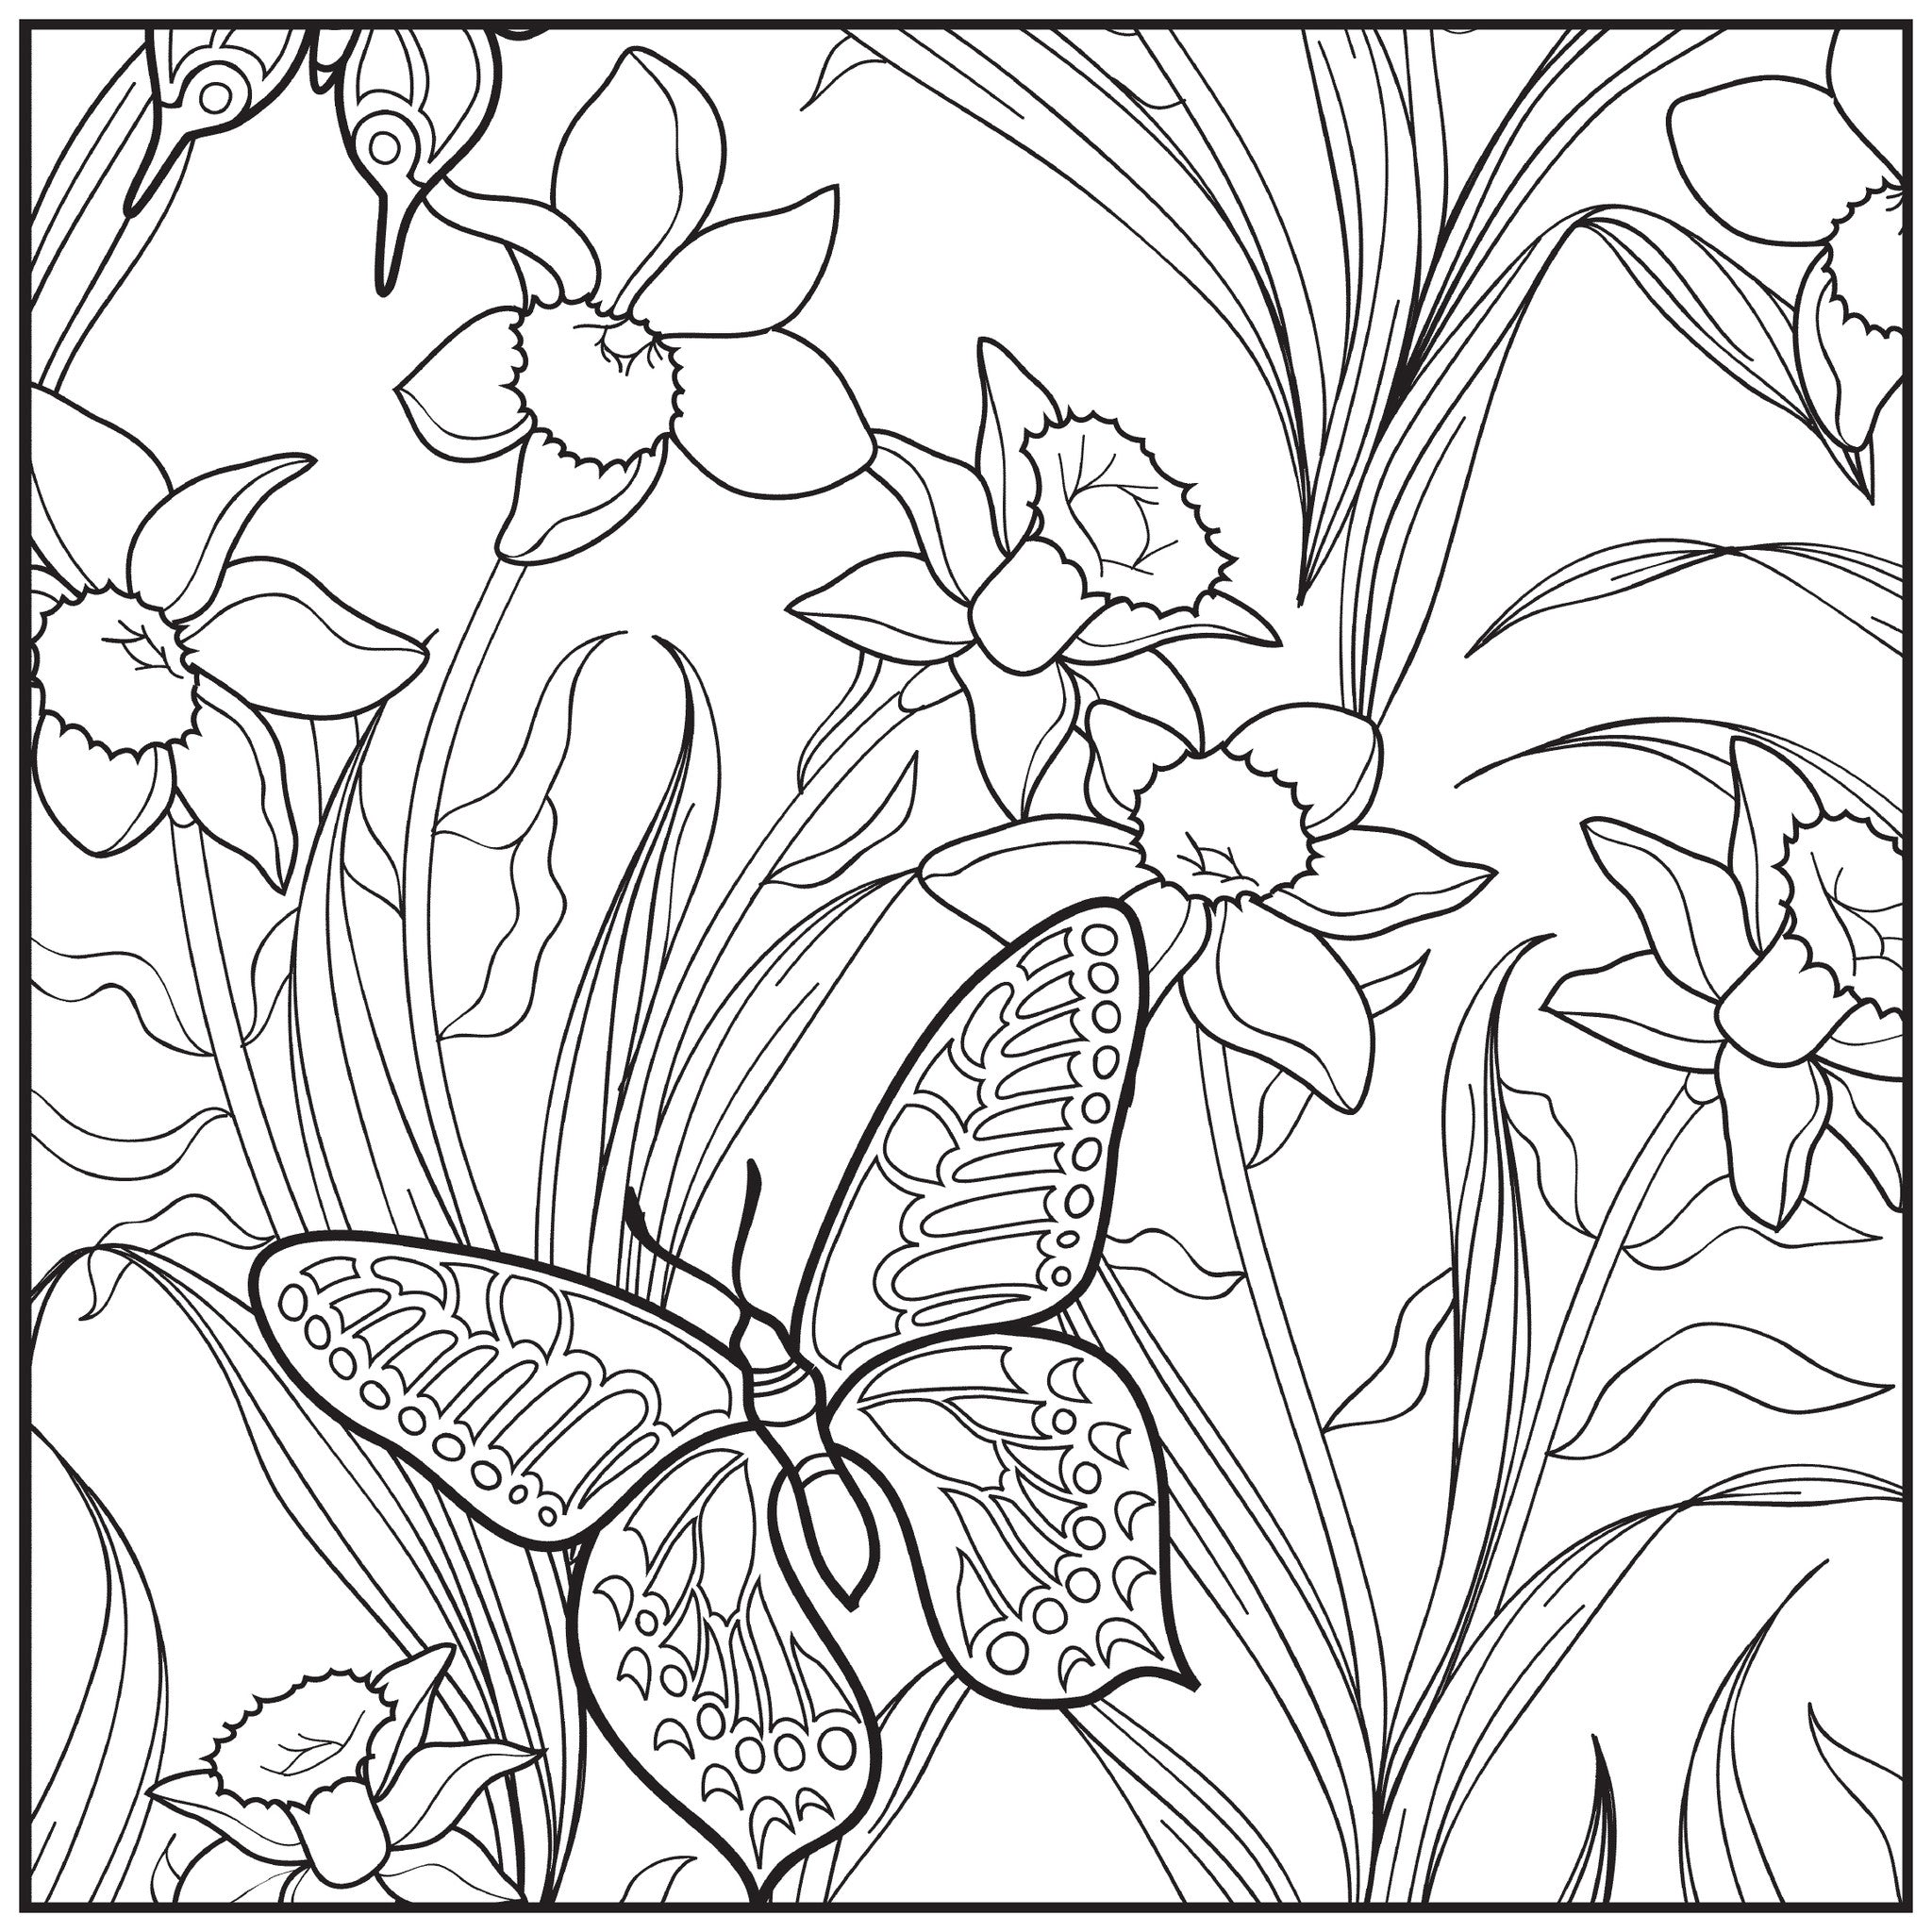 Color With Music Botanical Garden Adult Coloring Book Blank Page